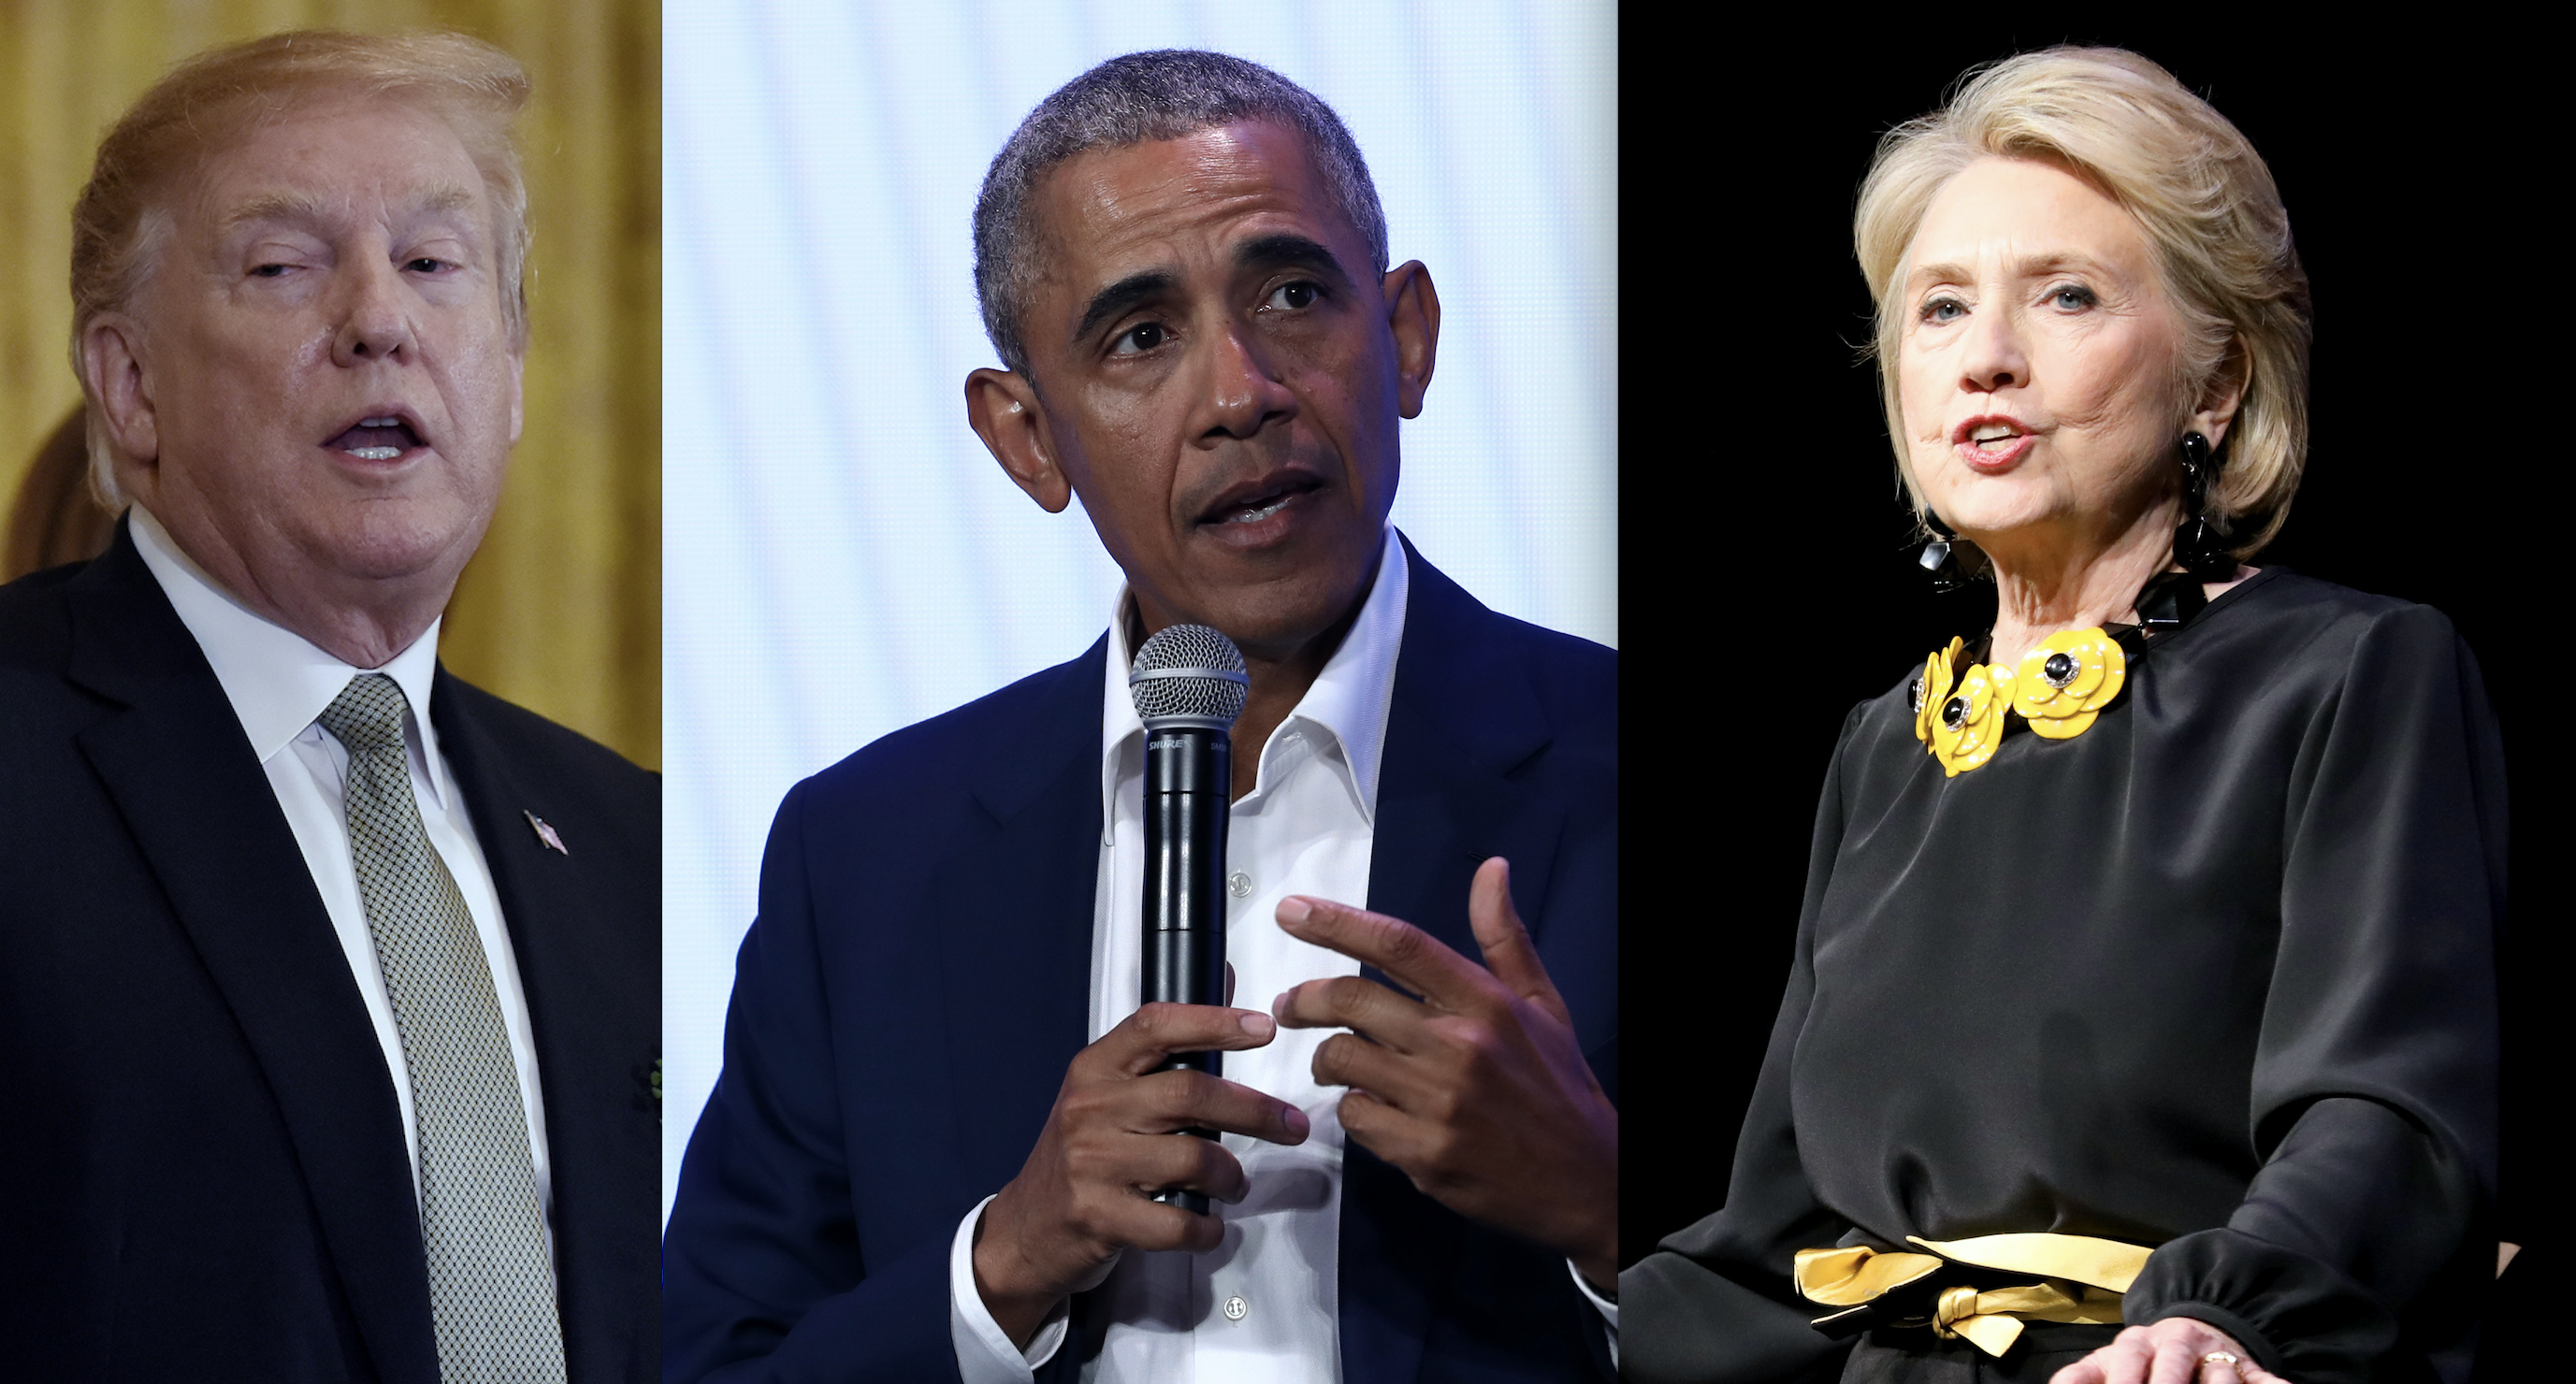 Barack Obama, Hillary Clinton, and other world leaders are posting messages in the wake of the New Zealand mosque shootings